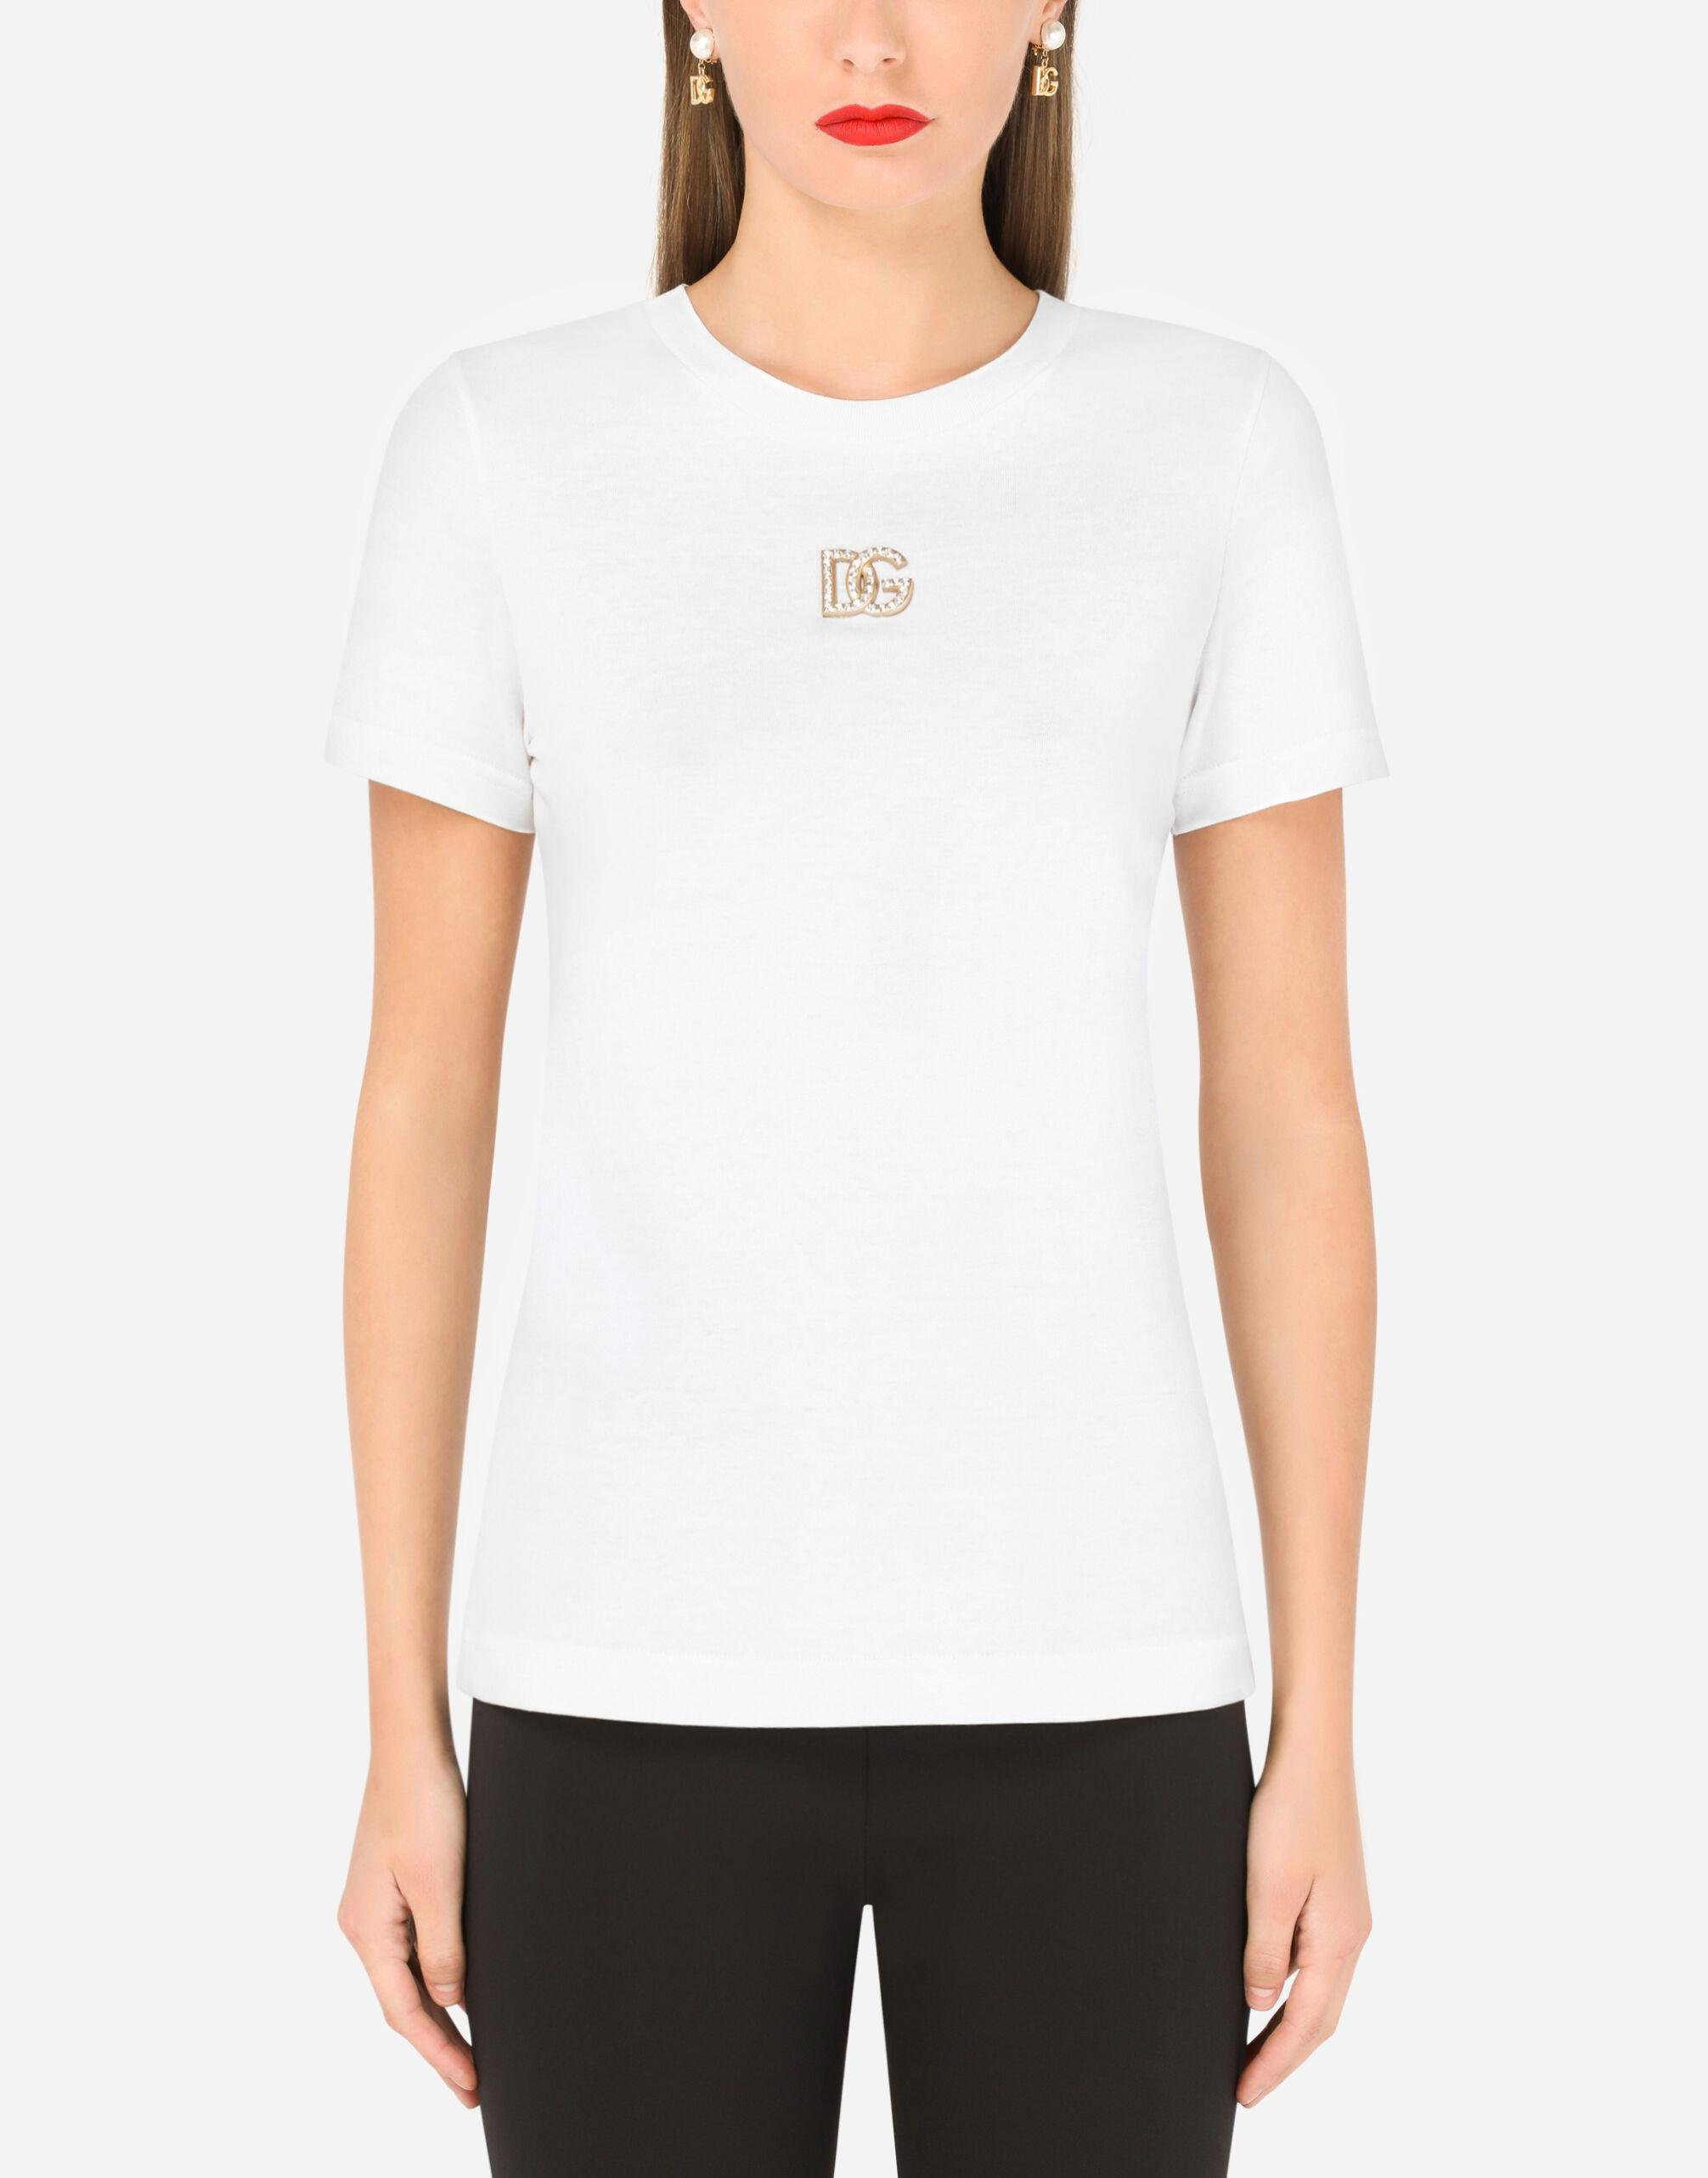 Jersey T-shirt with crystal DG embellishment